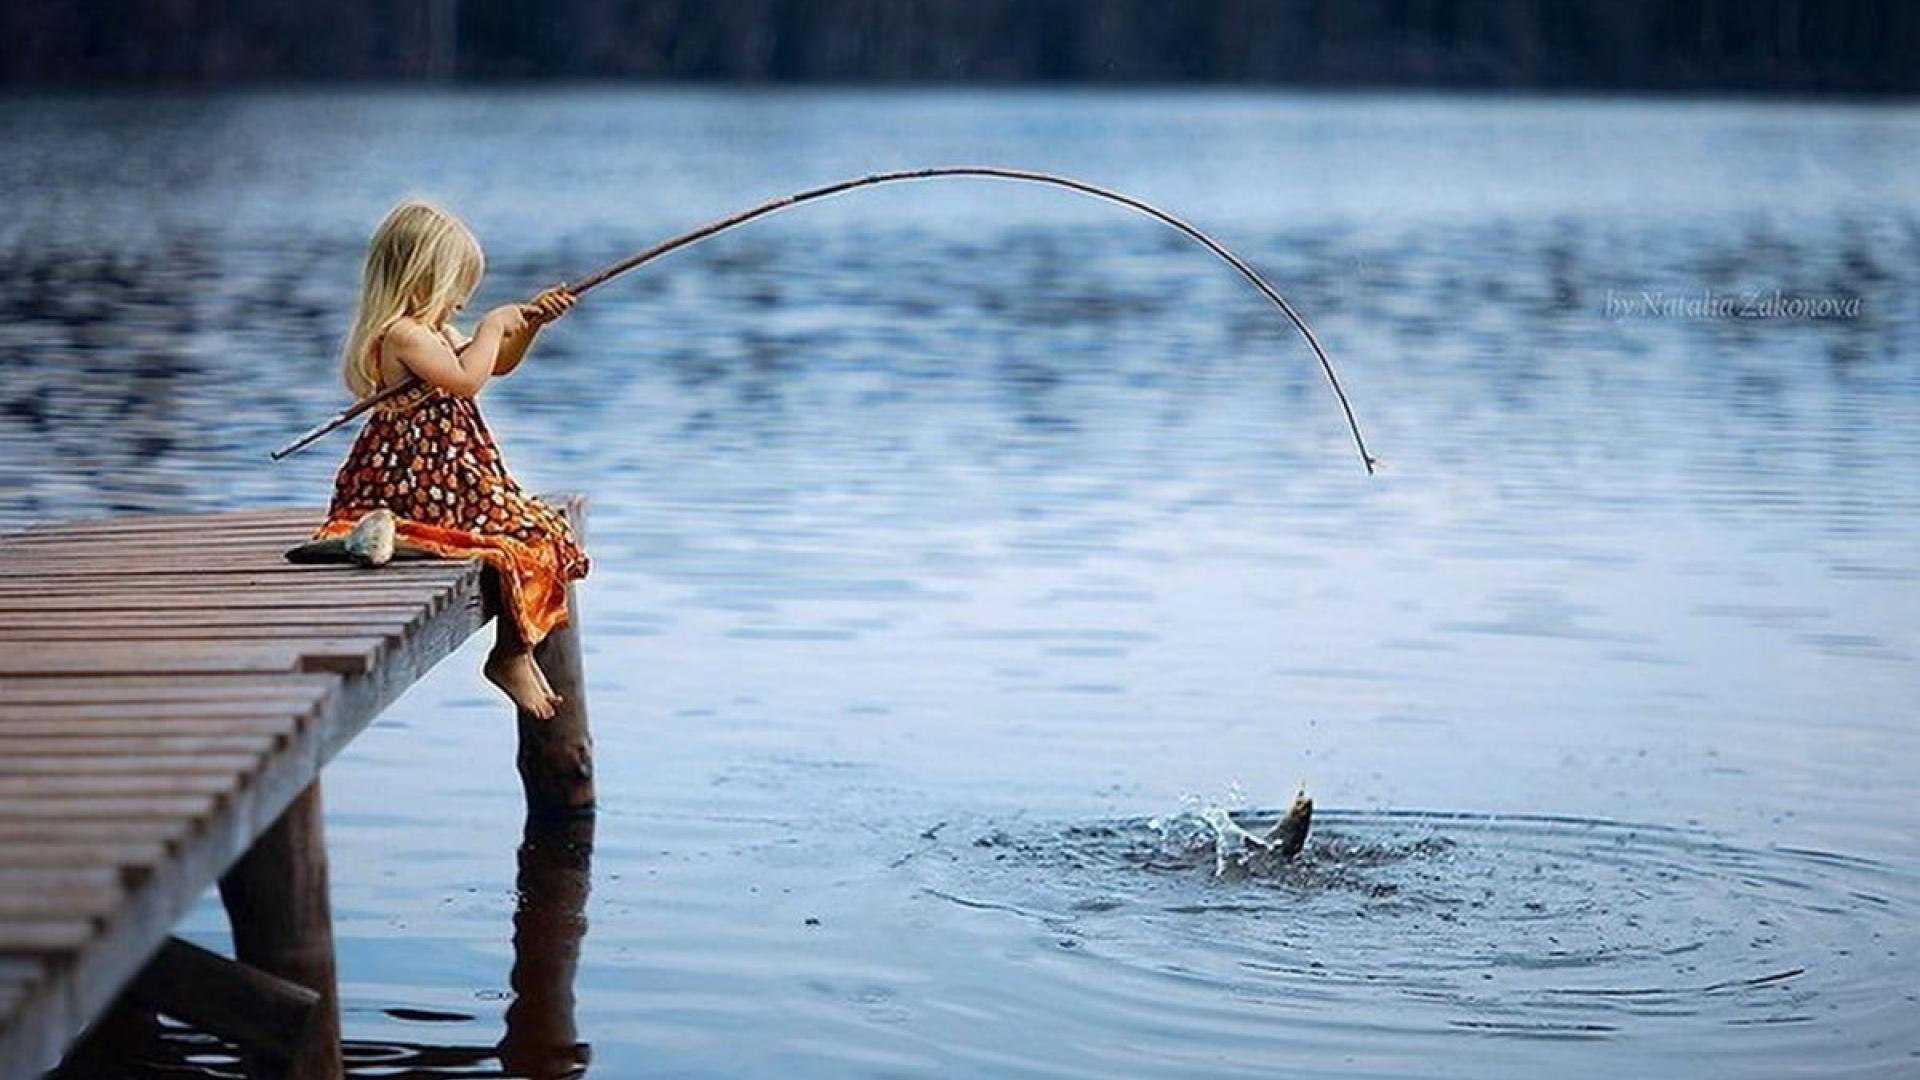 Ribolov na fotkama - Page 11 Little-girl-fishing-valentines-ideas